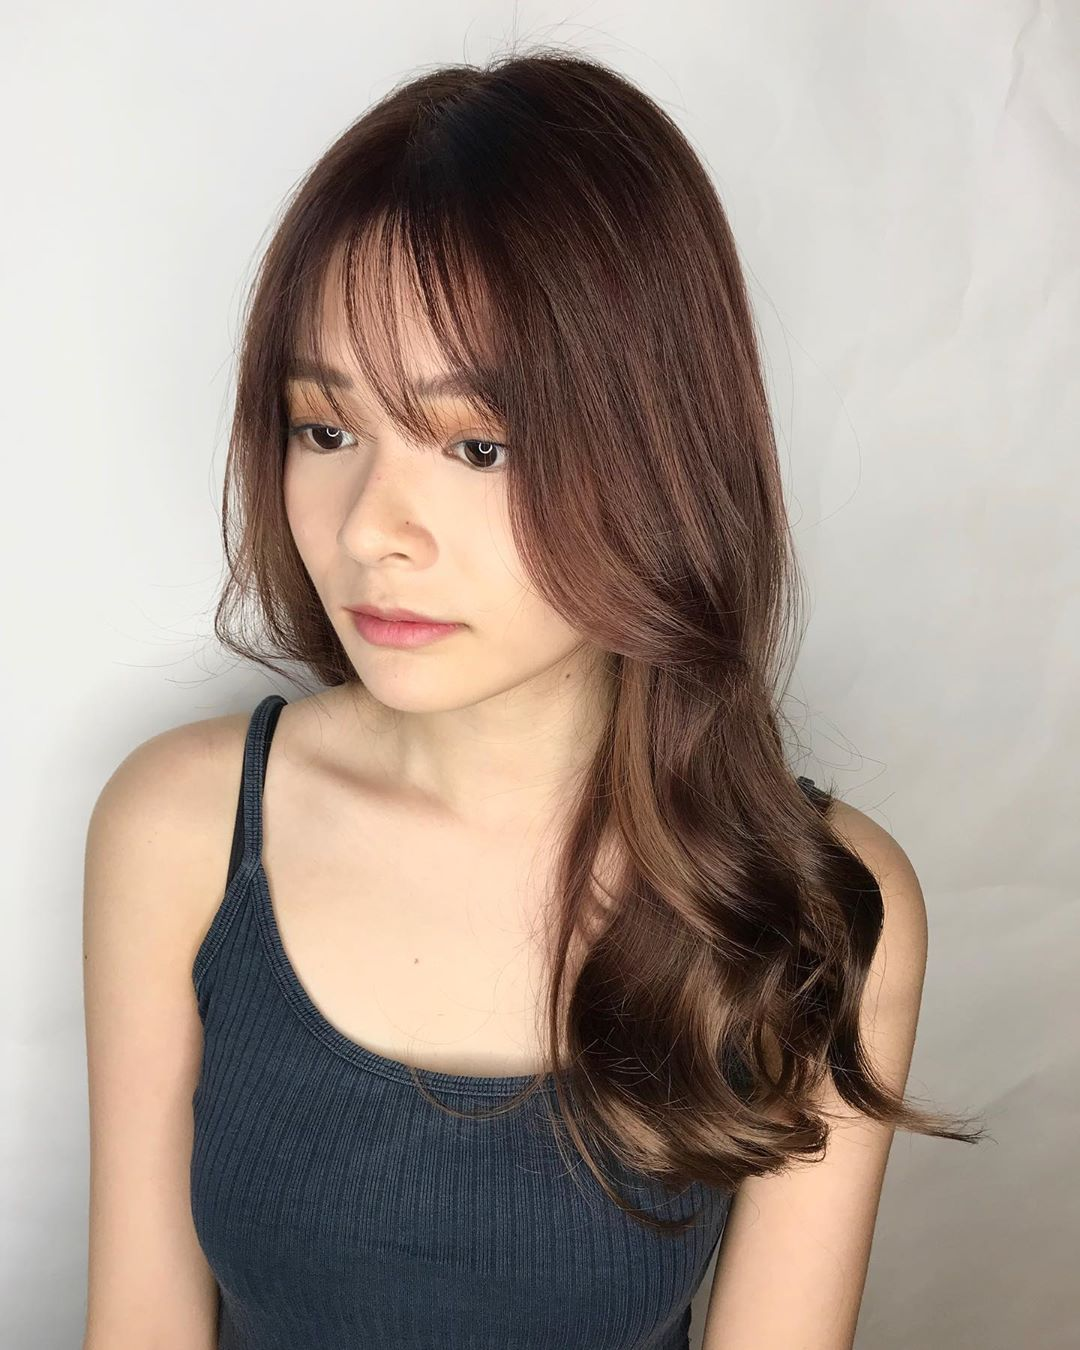 Haircut with See-Through Bangs and Hair Colour by Mode Studio